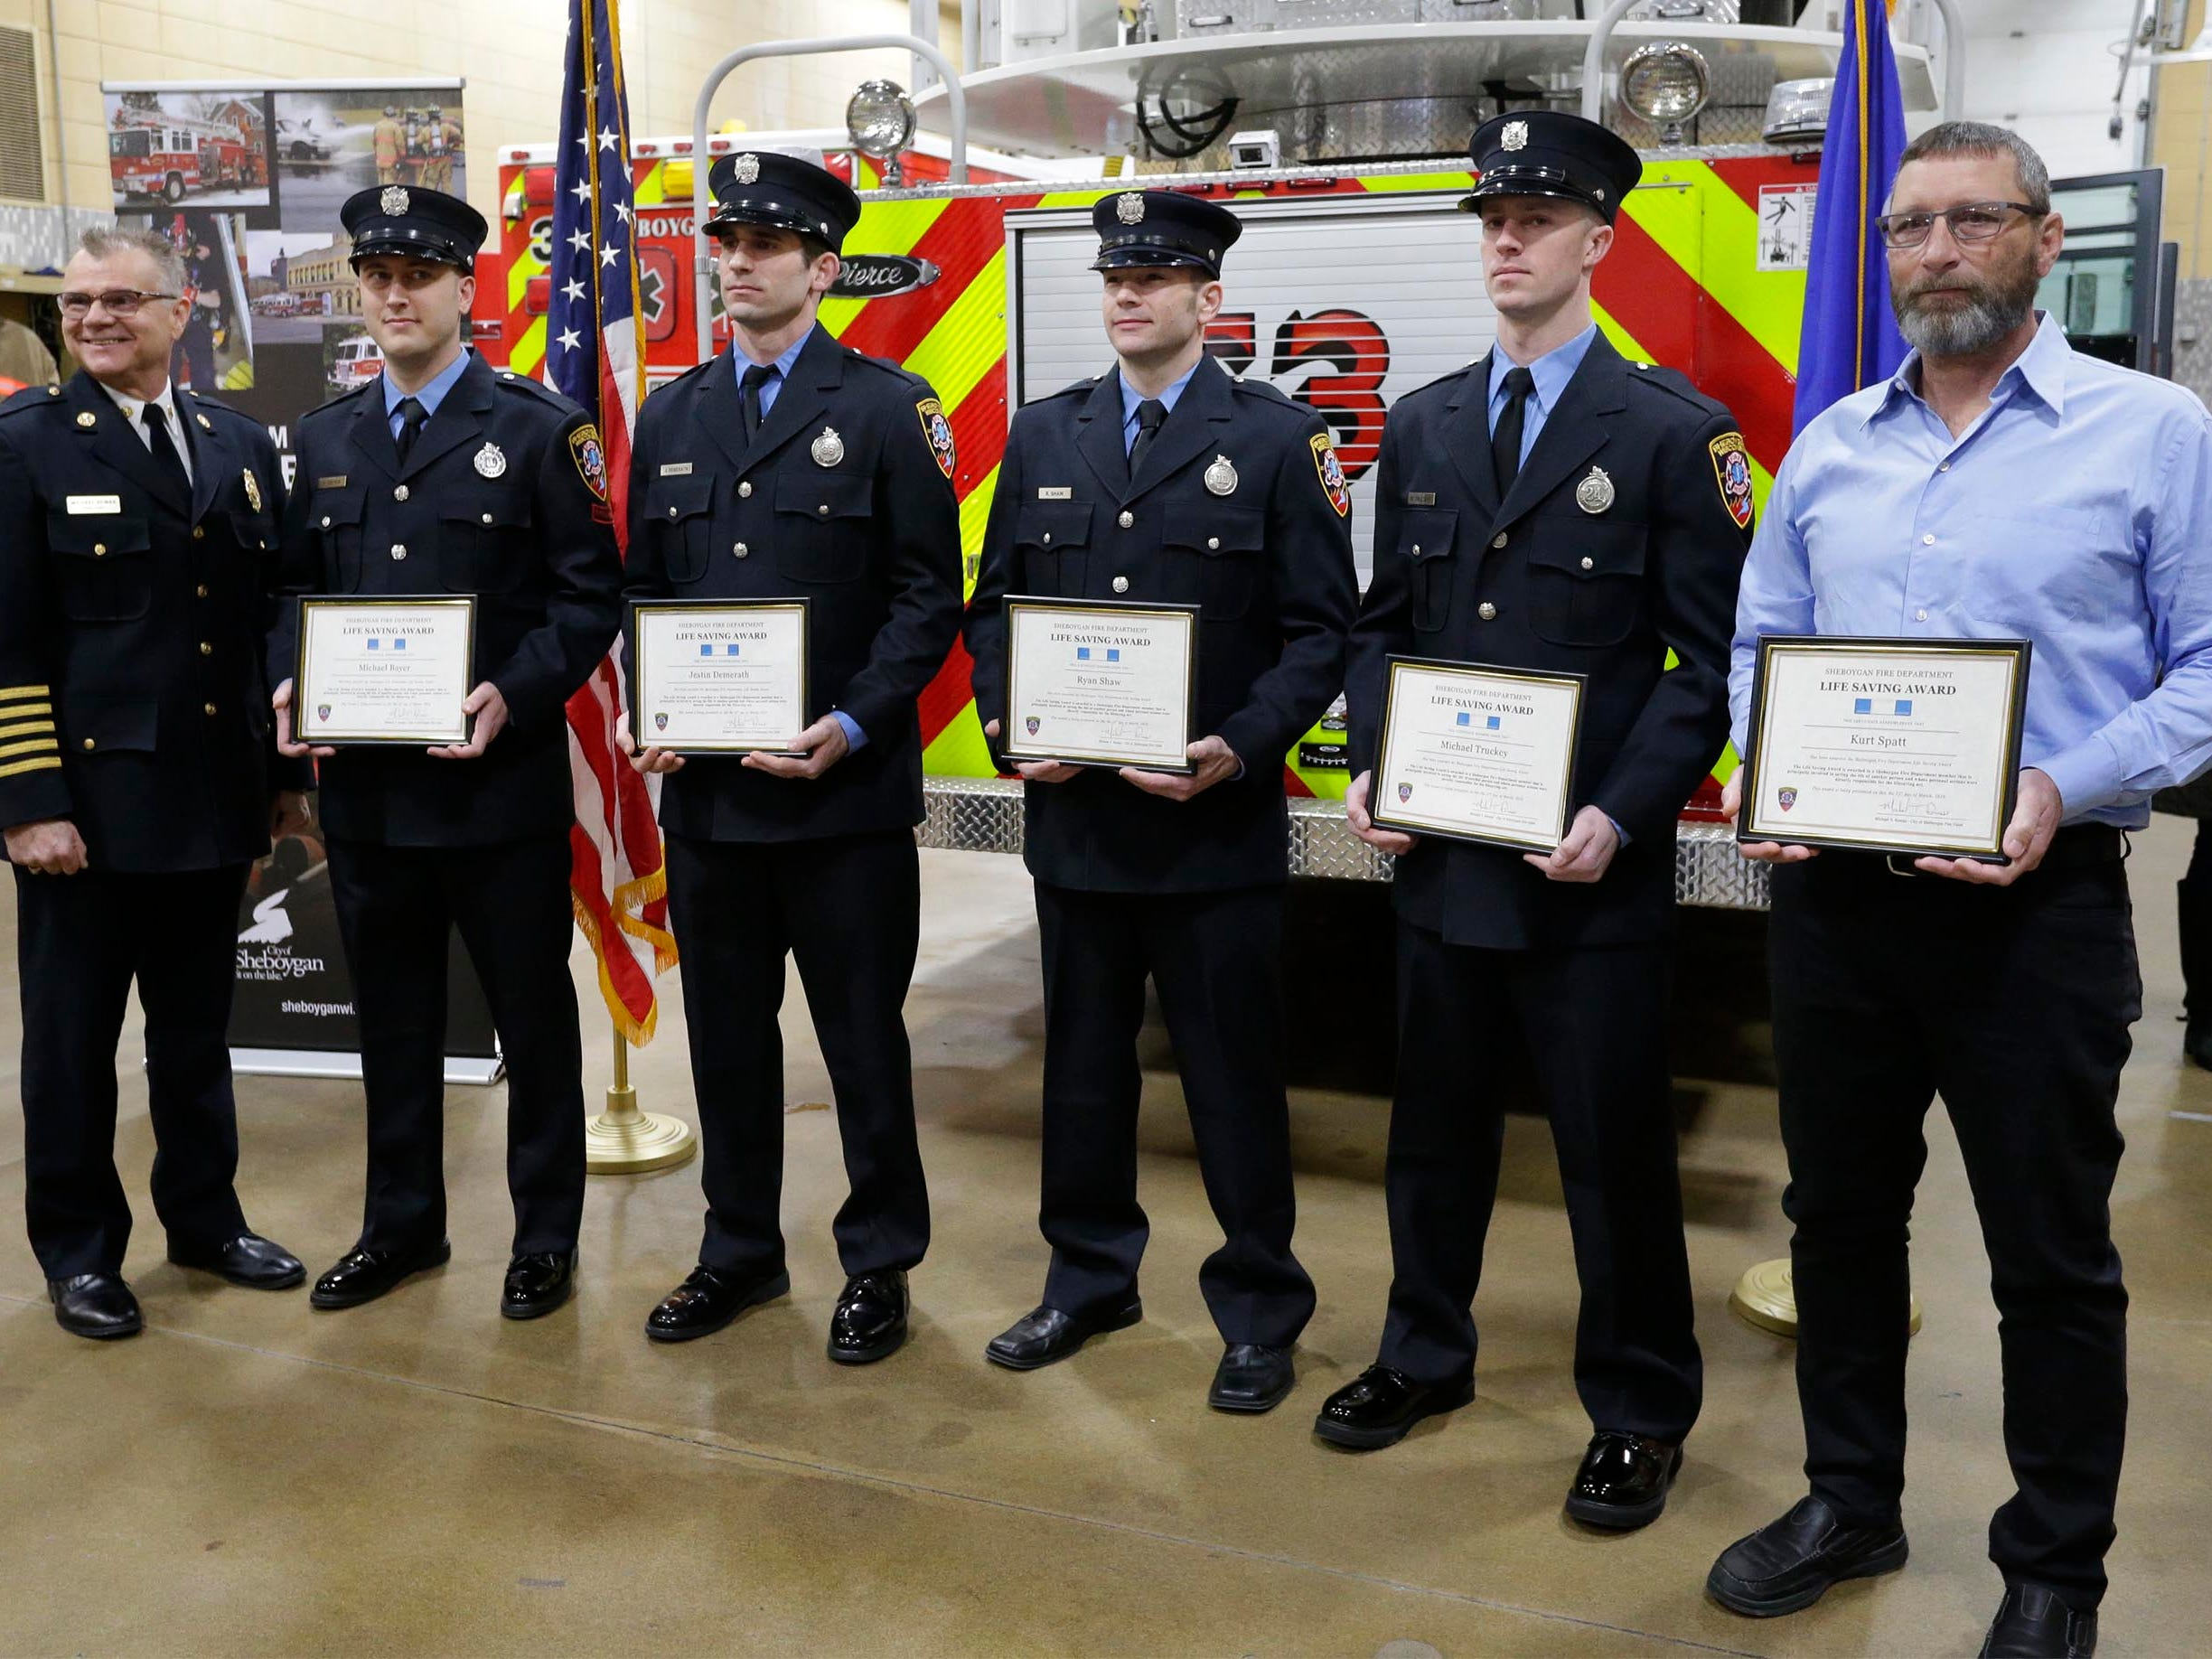 Sheboygan Fire Chief Mike Romas poses with the five honored firefighters, Wednesday, February 21, 2019, in Sheboygan, Wis. The honored firefighters from left are: Michael Bayer, Justin Demerath, Ryan Shaw, Michael Truckey and Kurt Spatt.